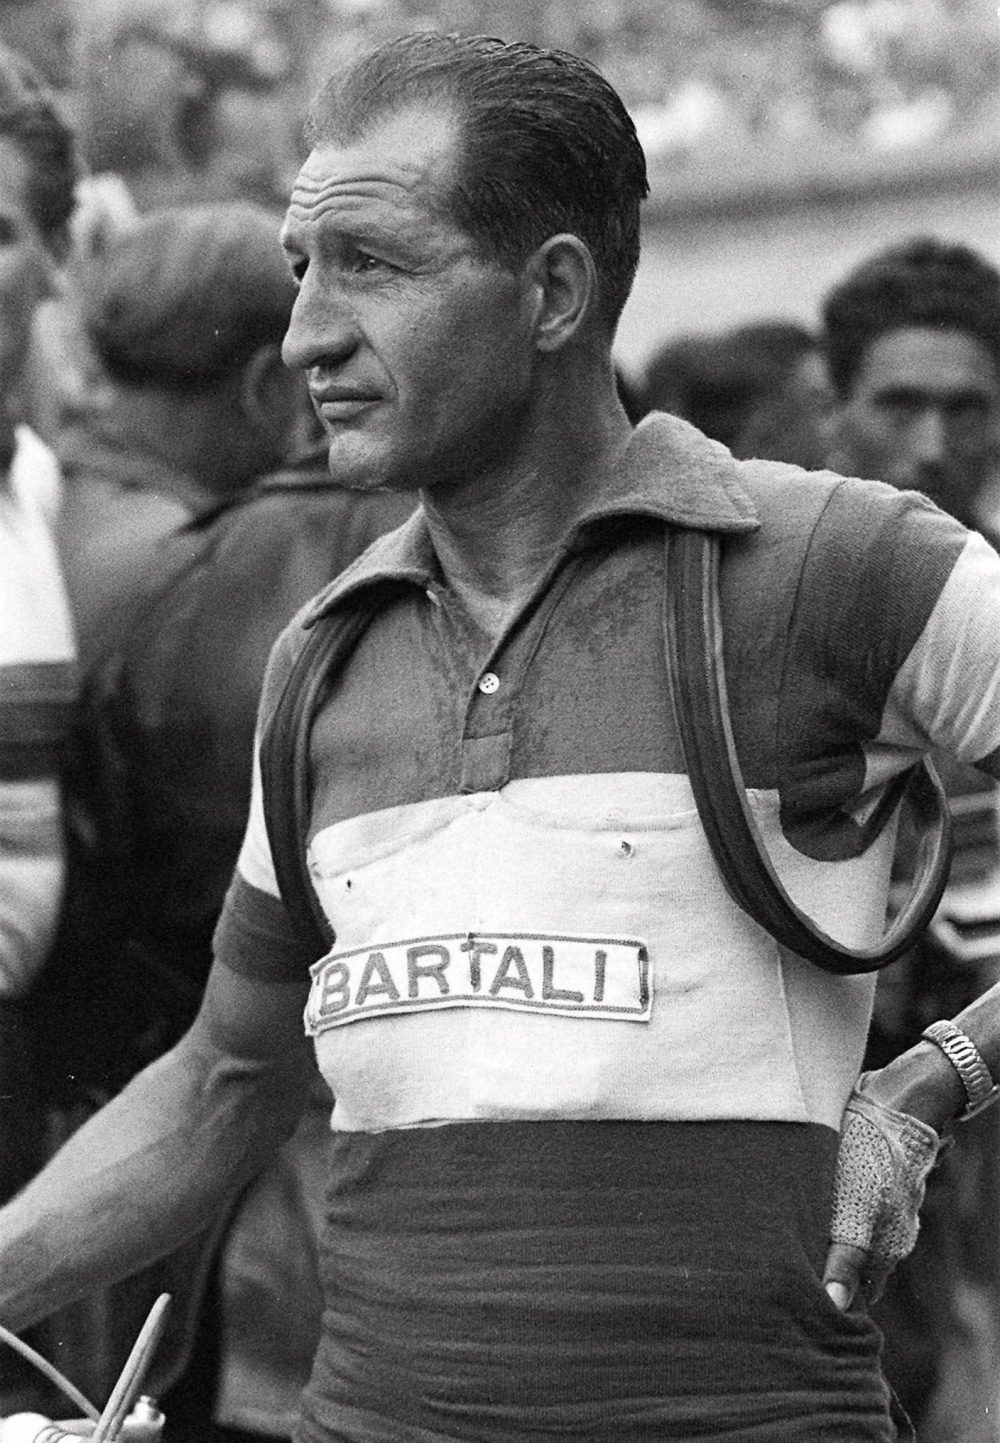 Italian cycling great Gino Bartali, seen in this 1953 picture, whose victory in the 1948 Tour of France may have averted a political insurrection at home. In 1948, the nationwide enthusiasm touched off by Bartali's victory in the prestigious French Tour helped to ease political tensions over the shooting and wounding of Communist leader Palmiro Togliatti. Several historians suggested thatelation over Bartali's win avoided an insurrection by Italian communists. (AP Photo)